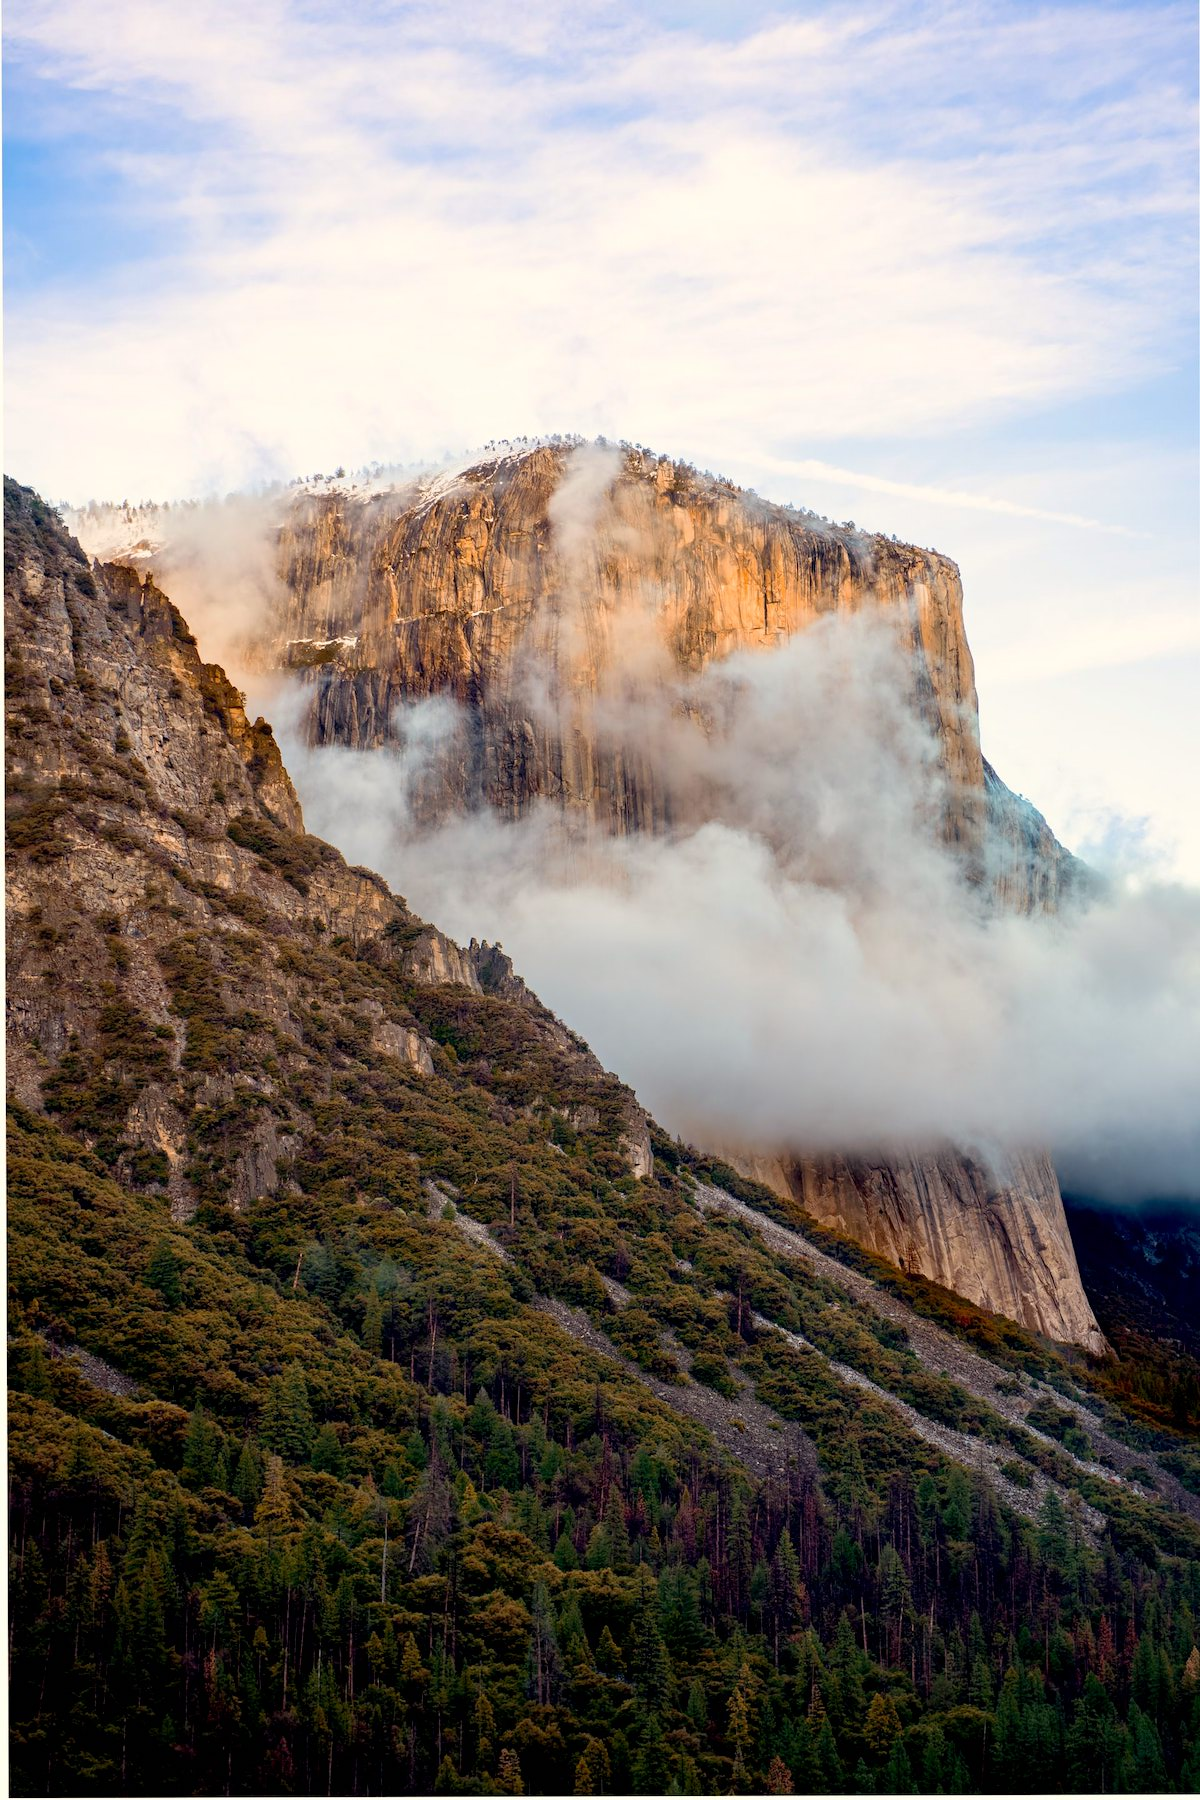 Best photography spots in yosemite national park el capitan where to shoot from